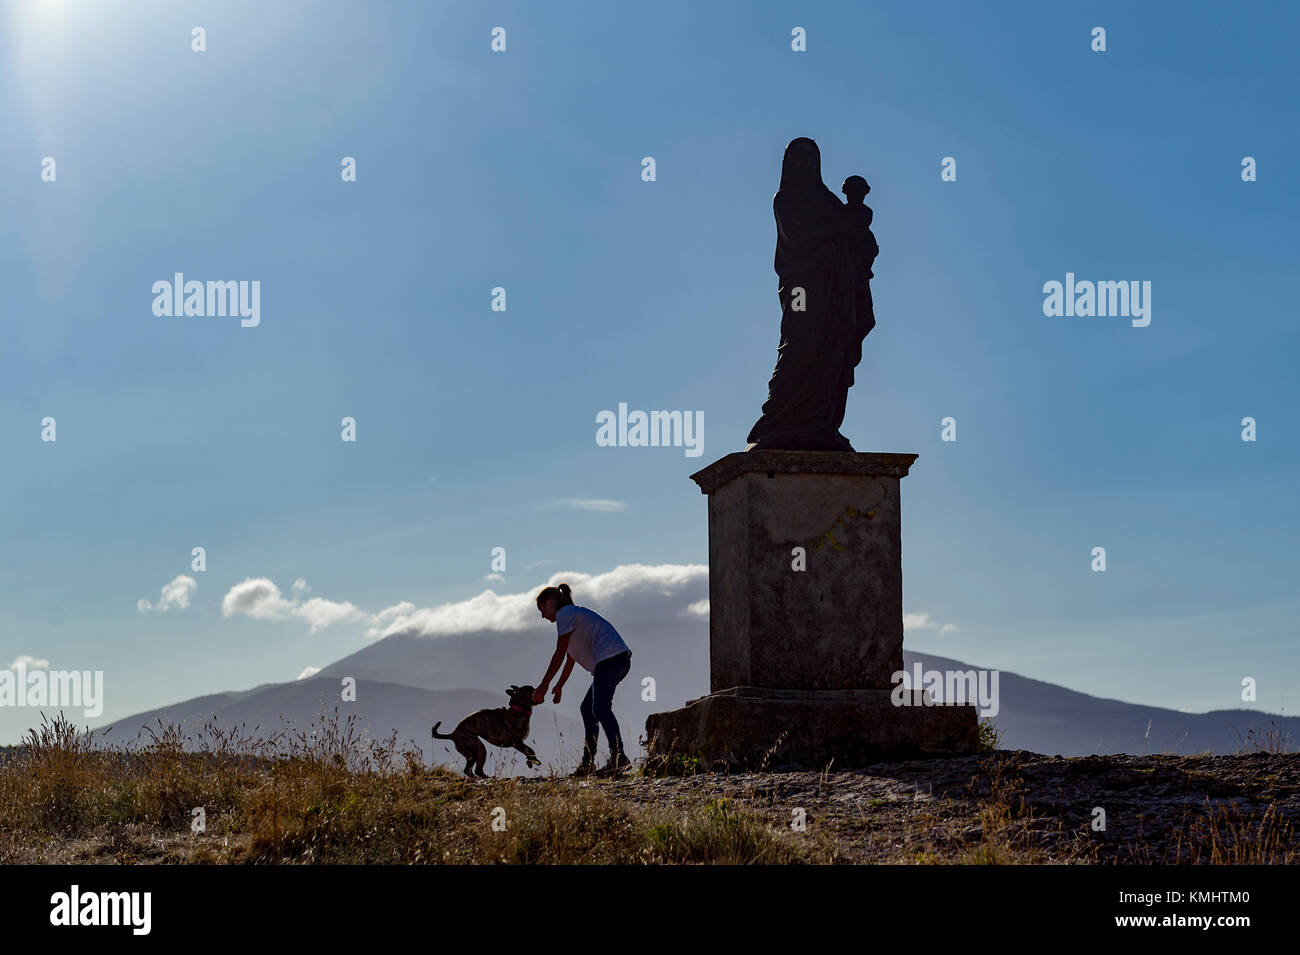 France. Vaucluse (84). Vaison La Romaine. Statue of the Virgin Mary and Mount Ventoux in the background - Stock Image